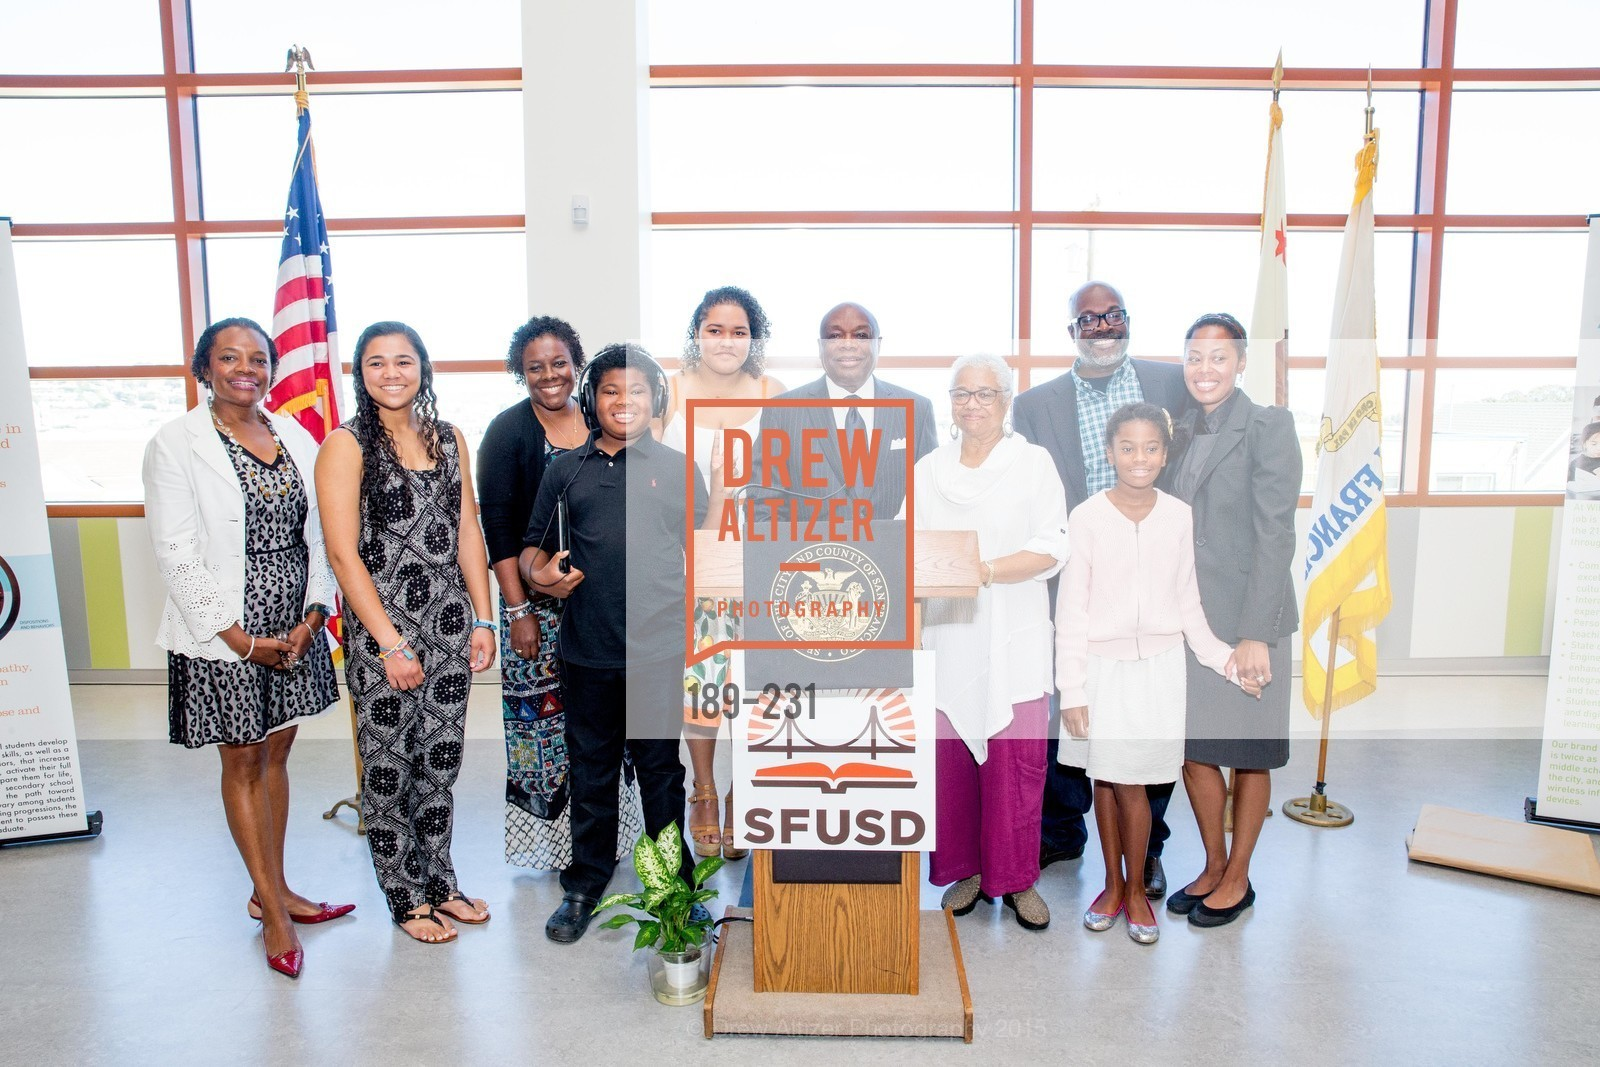 Susan Brown, Lordes Brown, Willie Brown, Blanche Brown, Michael Brown, Matea Brown, Isabelle Brown, Willie L. Brown Middle School Ribbon Cutting Ceremony, Willie L. Brown Middle School. 2055 Silver Avenue, August 13th, 2015,Drew Altizer, Drew Altizer Photography, full-service agency, private events, San Francisco photographer, photographer california